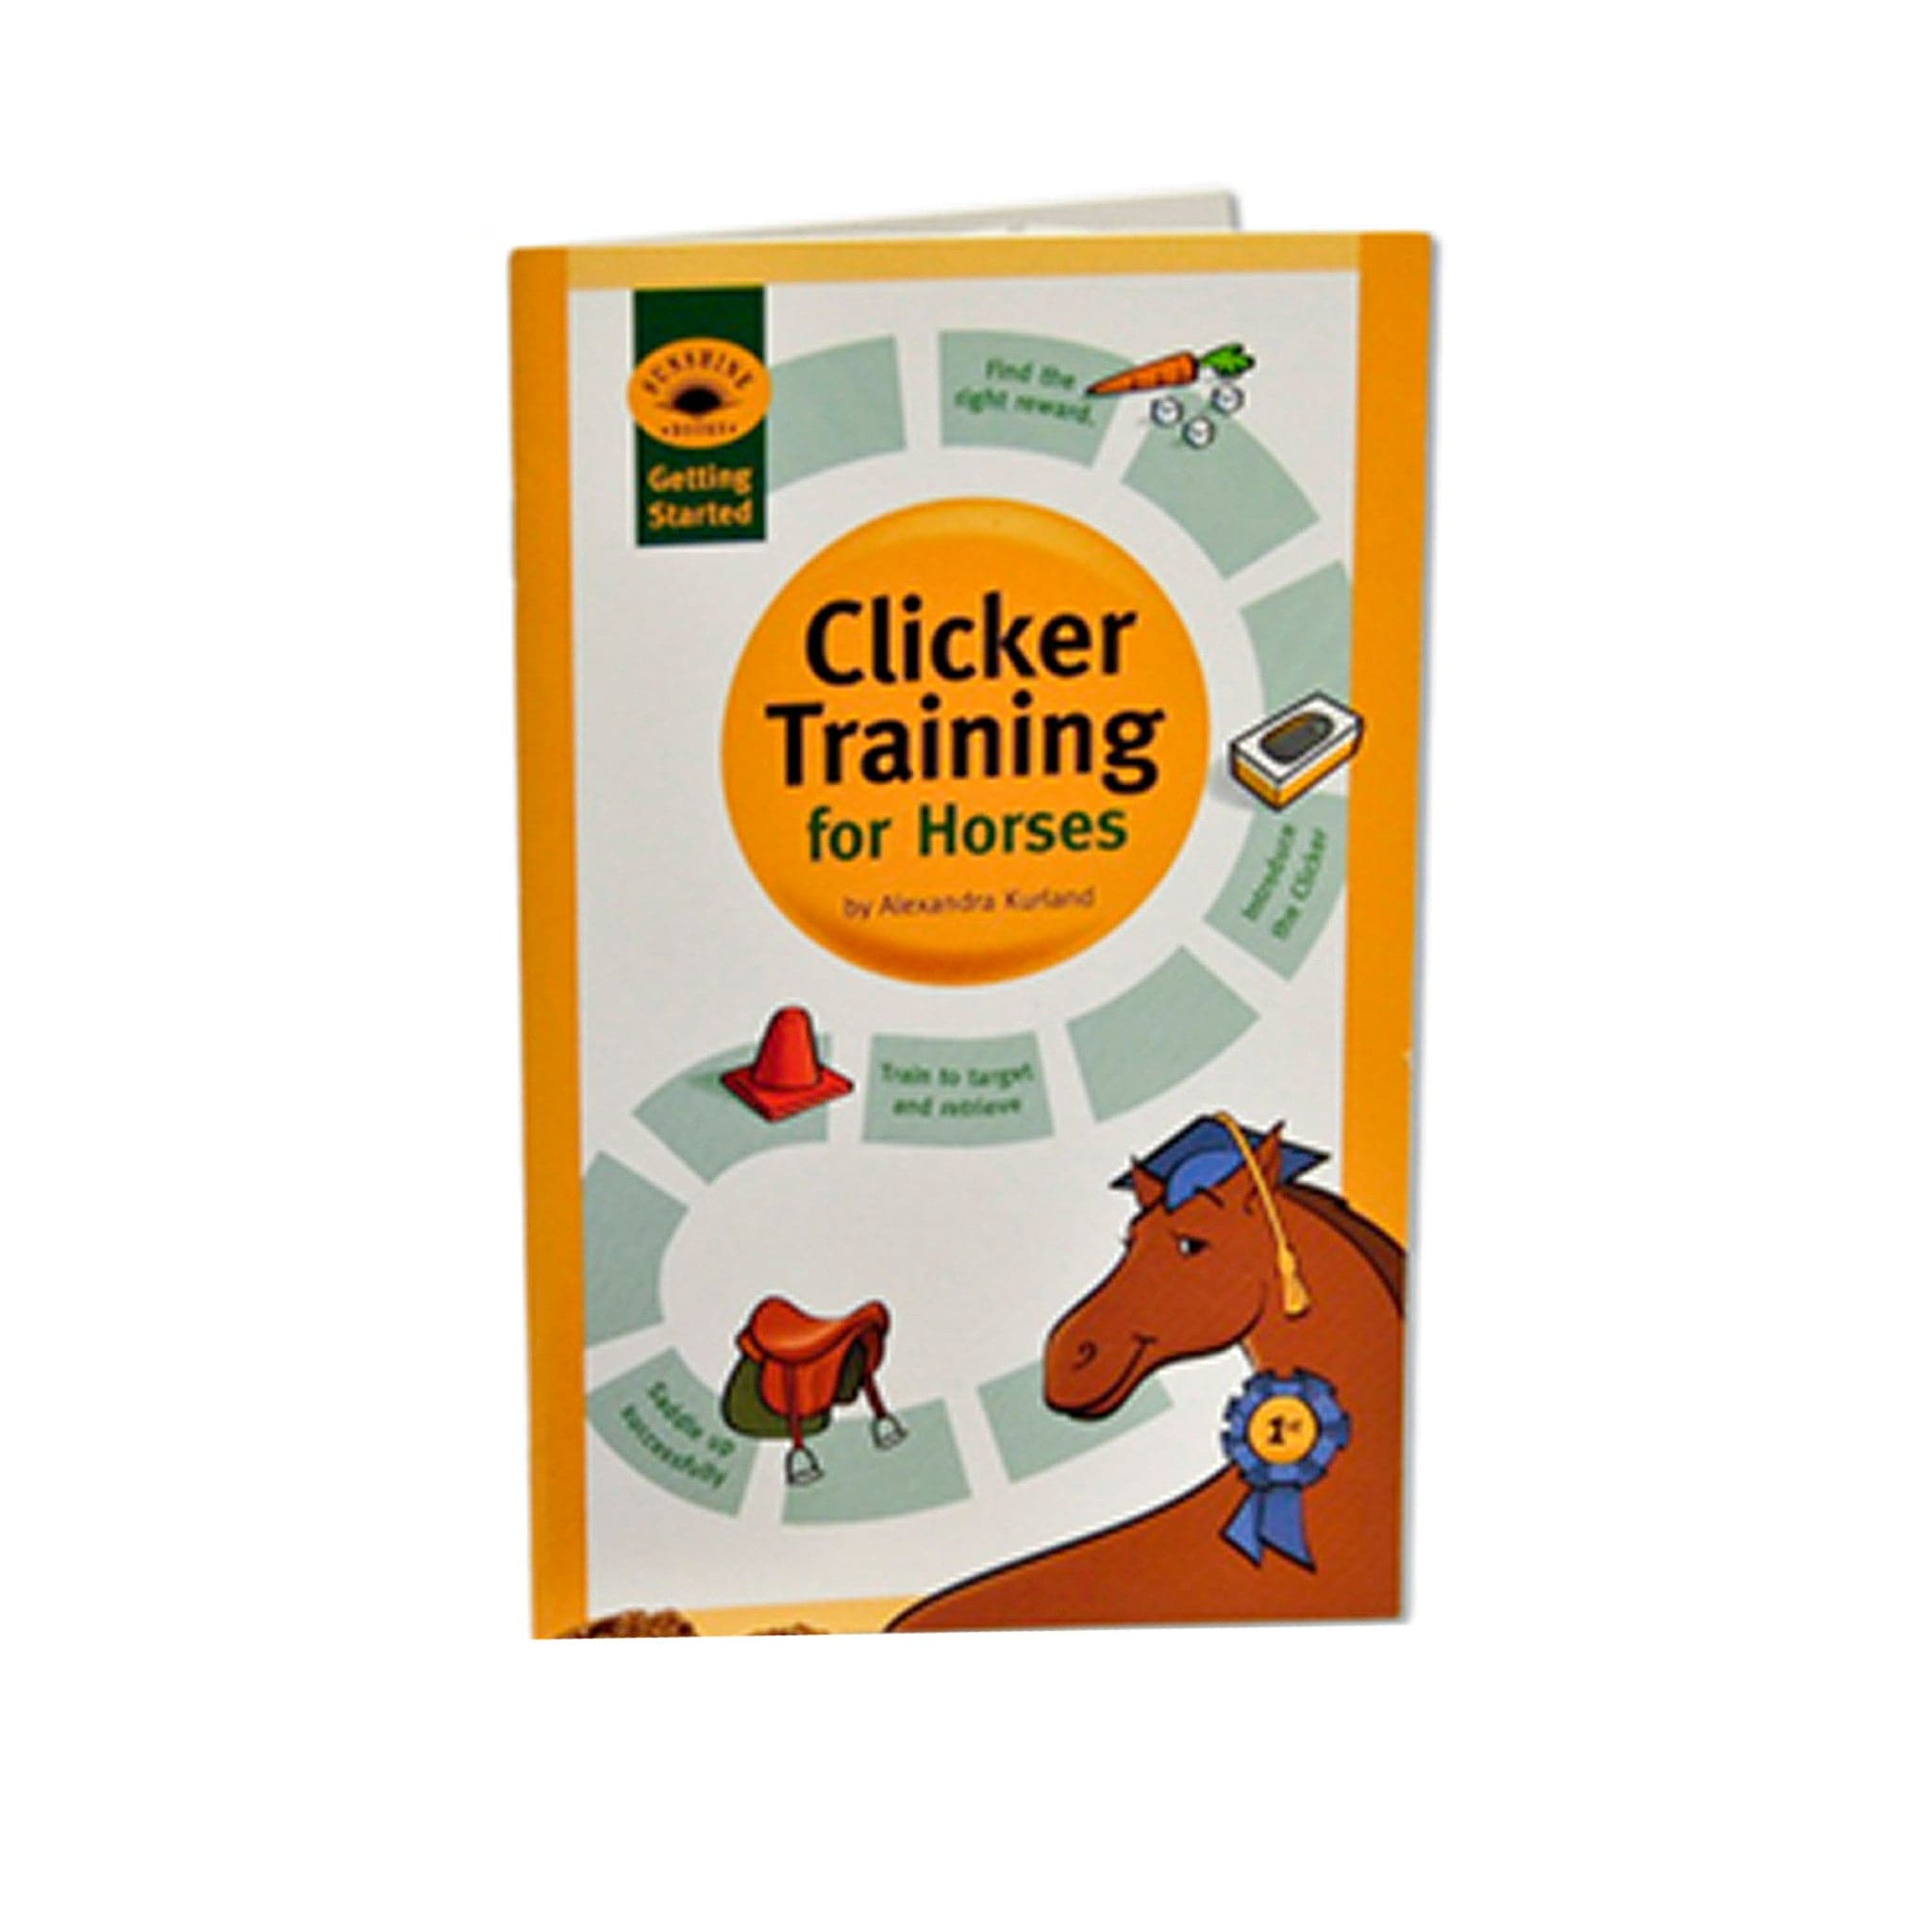 Getting Started Clicker Training For Dogs By Karen Pryor